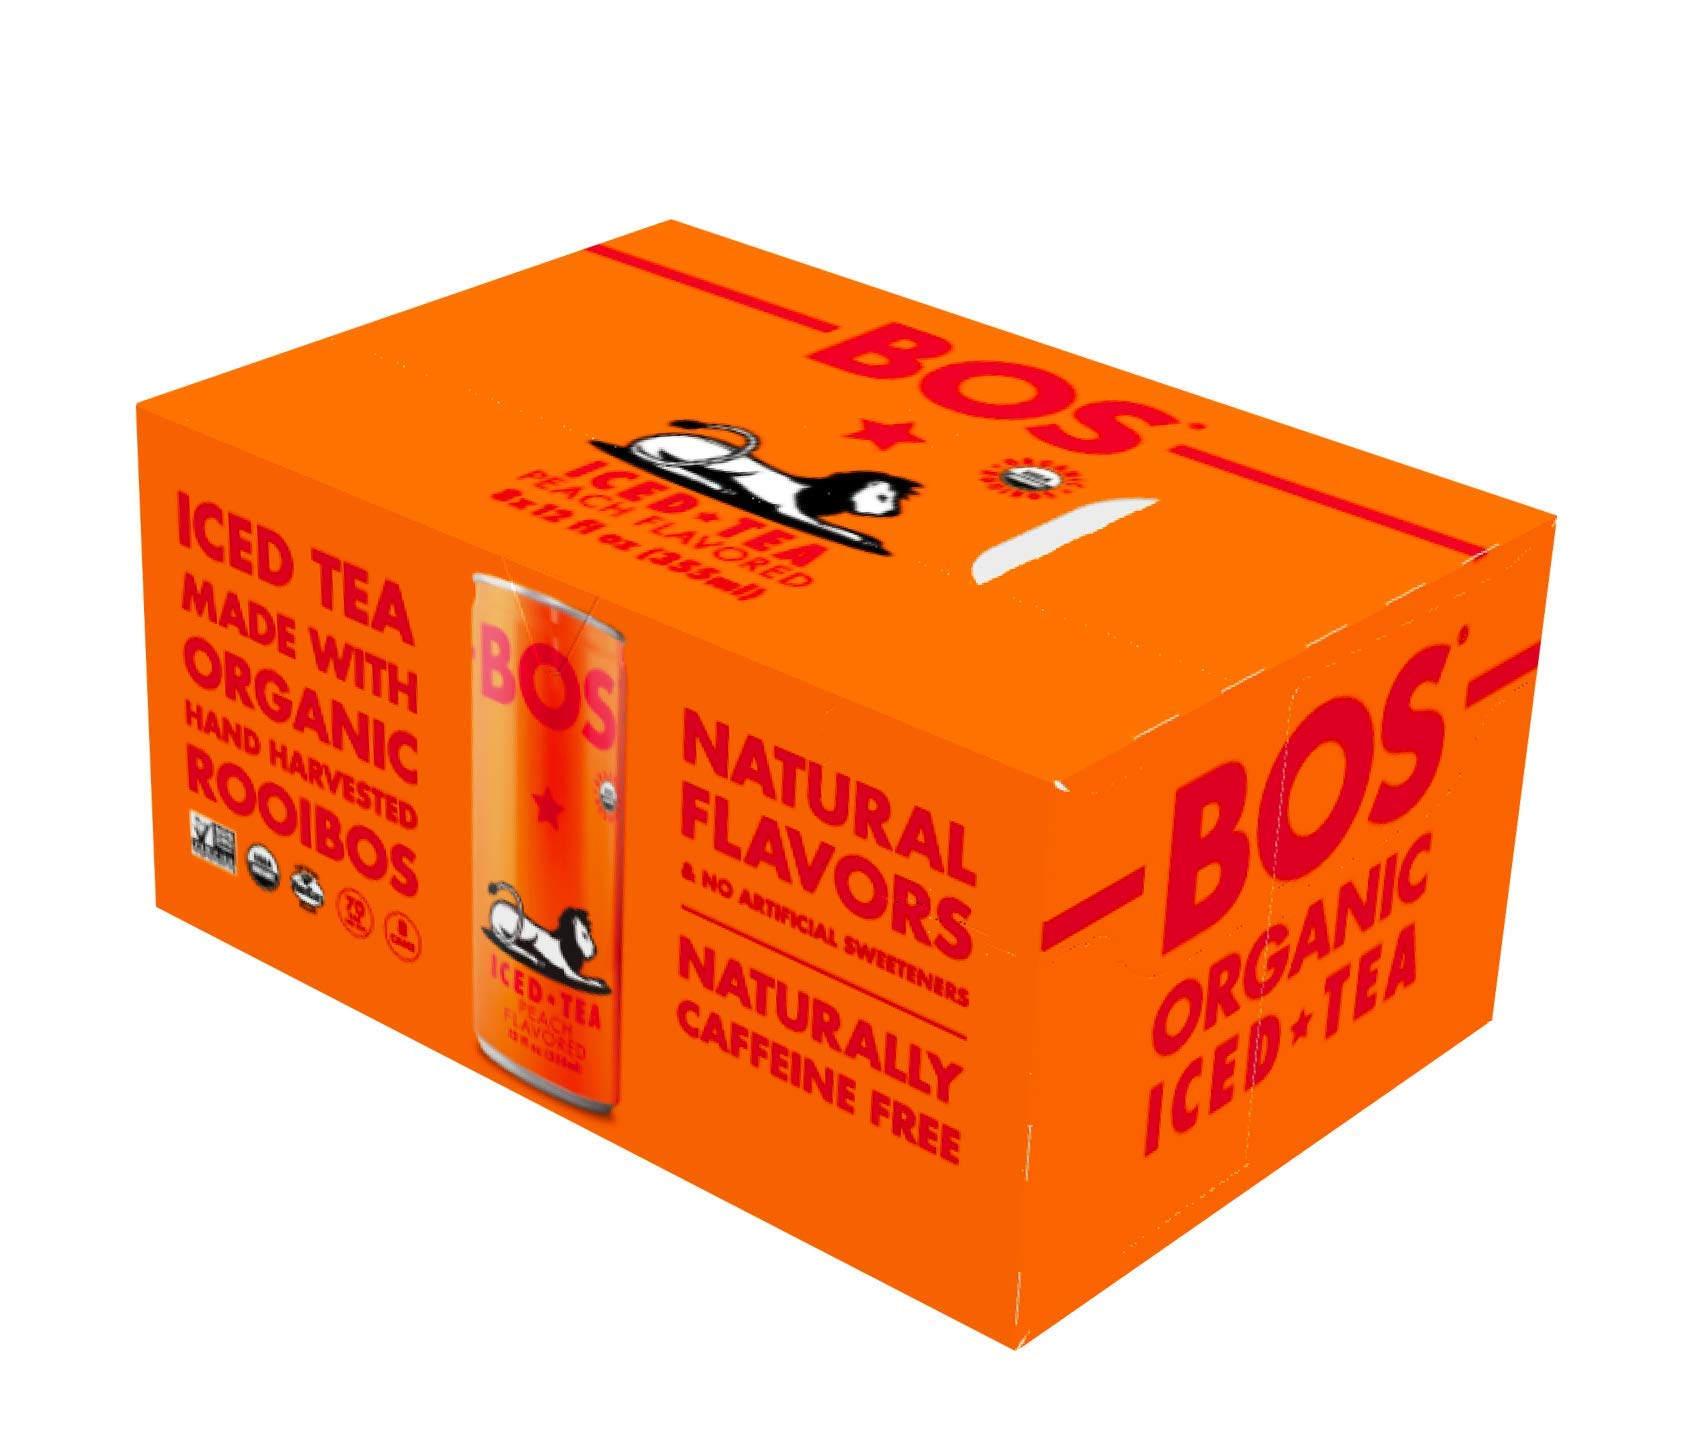 BOS Organic Iced Tea - Naturally Caffeine Free and Antioxidant Rich - Made with Rooibos (Peach, 8 Pack)